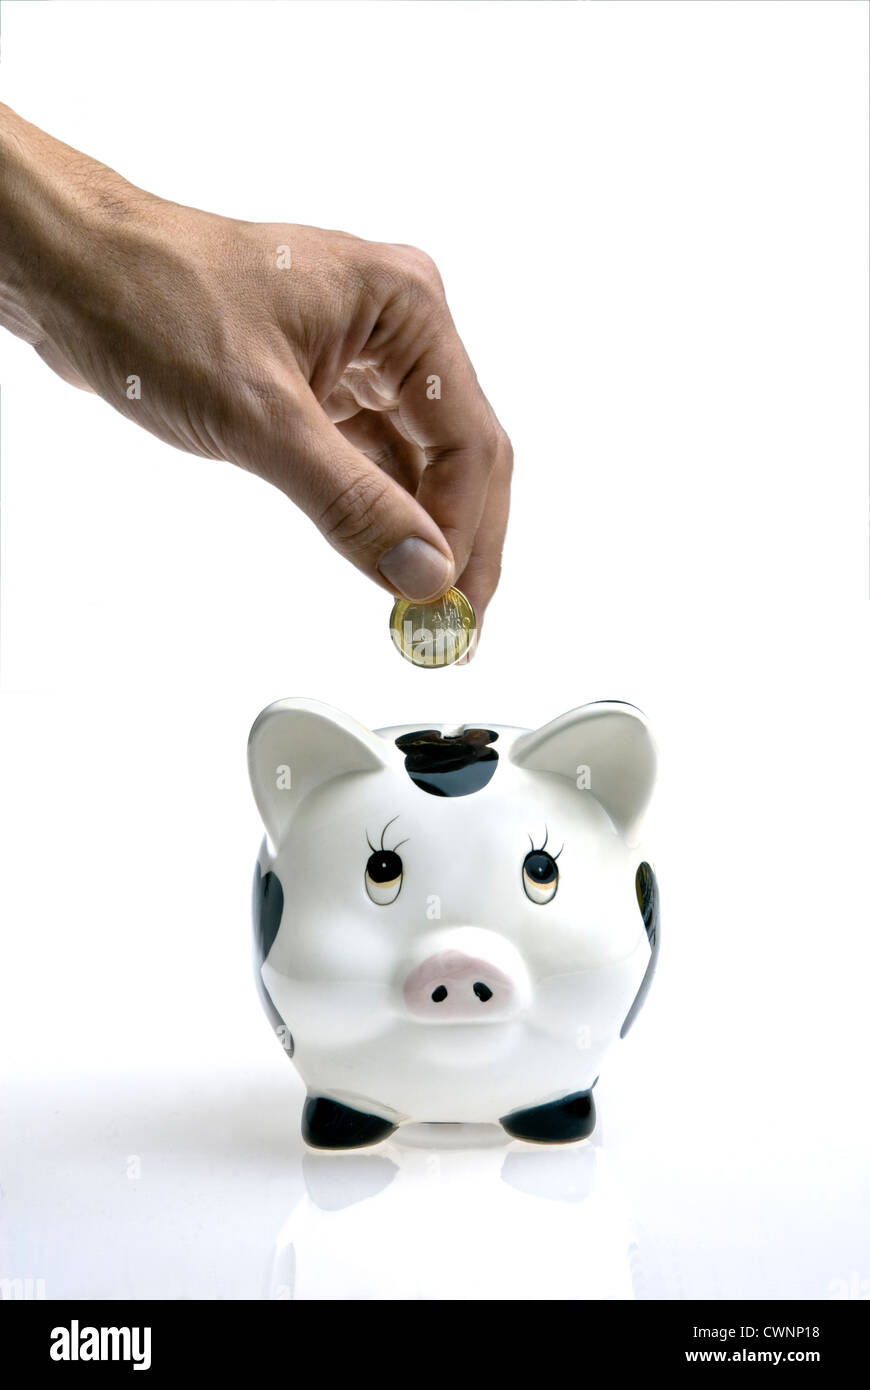 Coin being dropped into a piggy bank - Stock Image